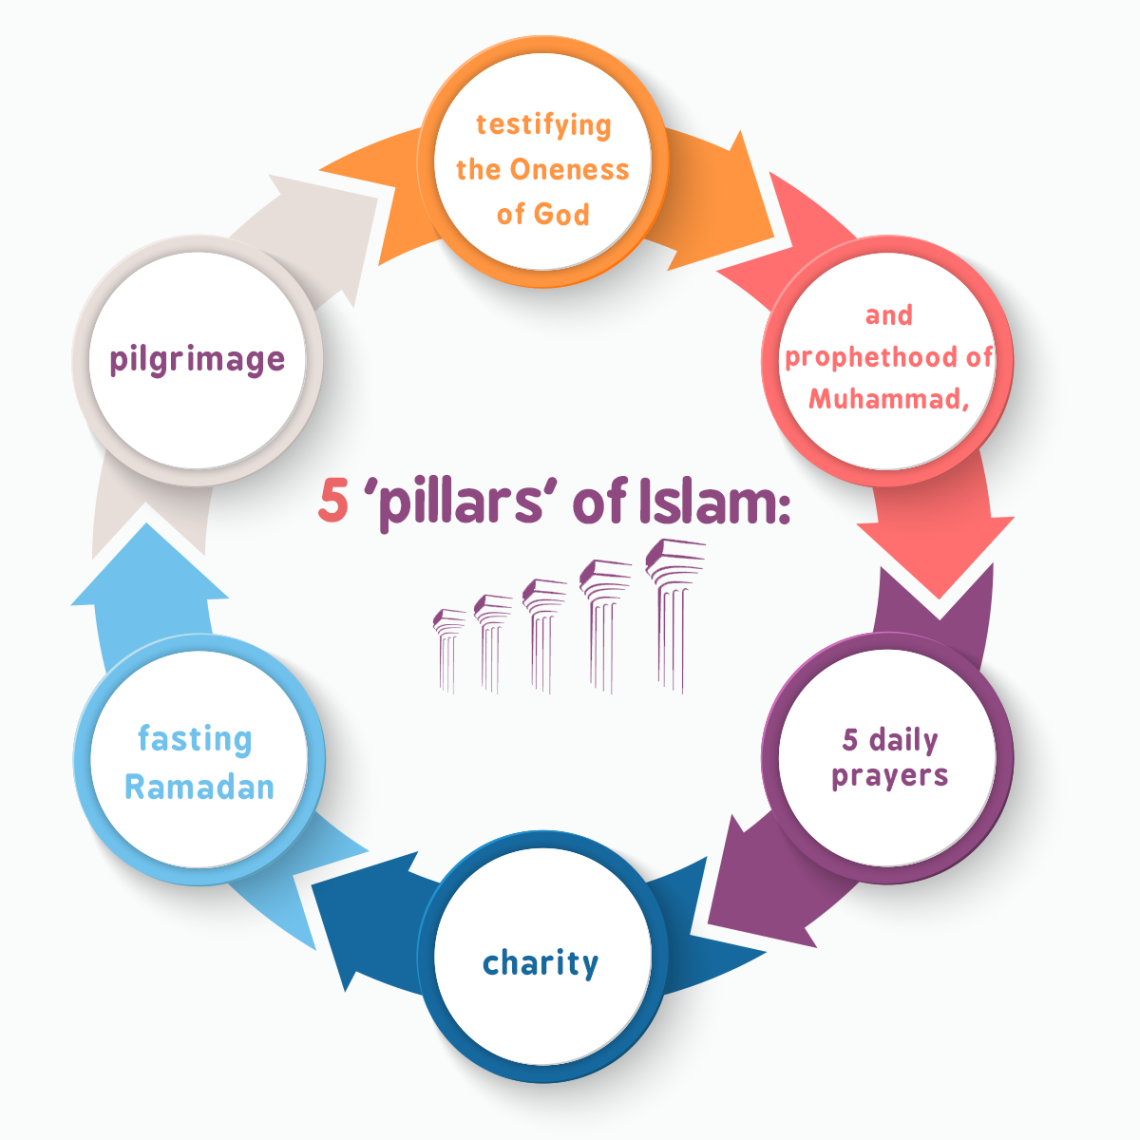 5 'pillars' of Islam